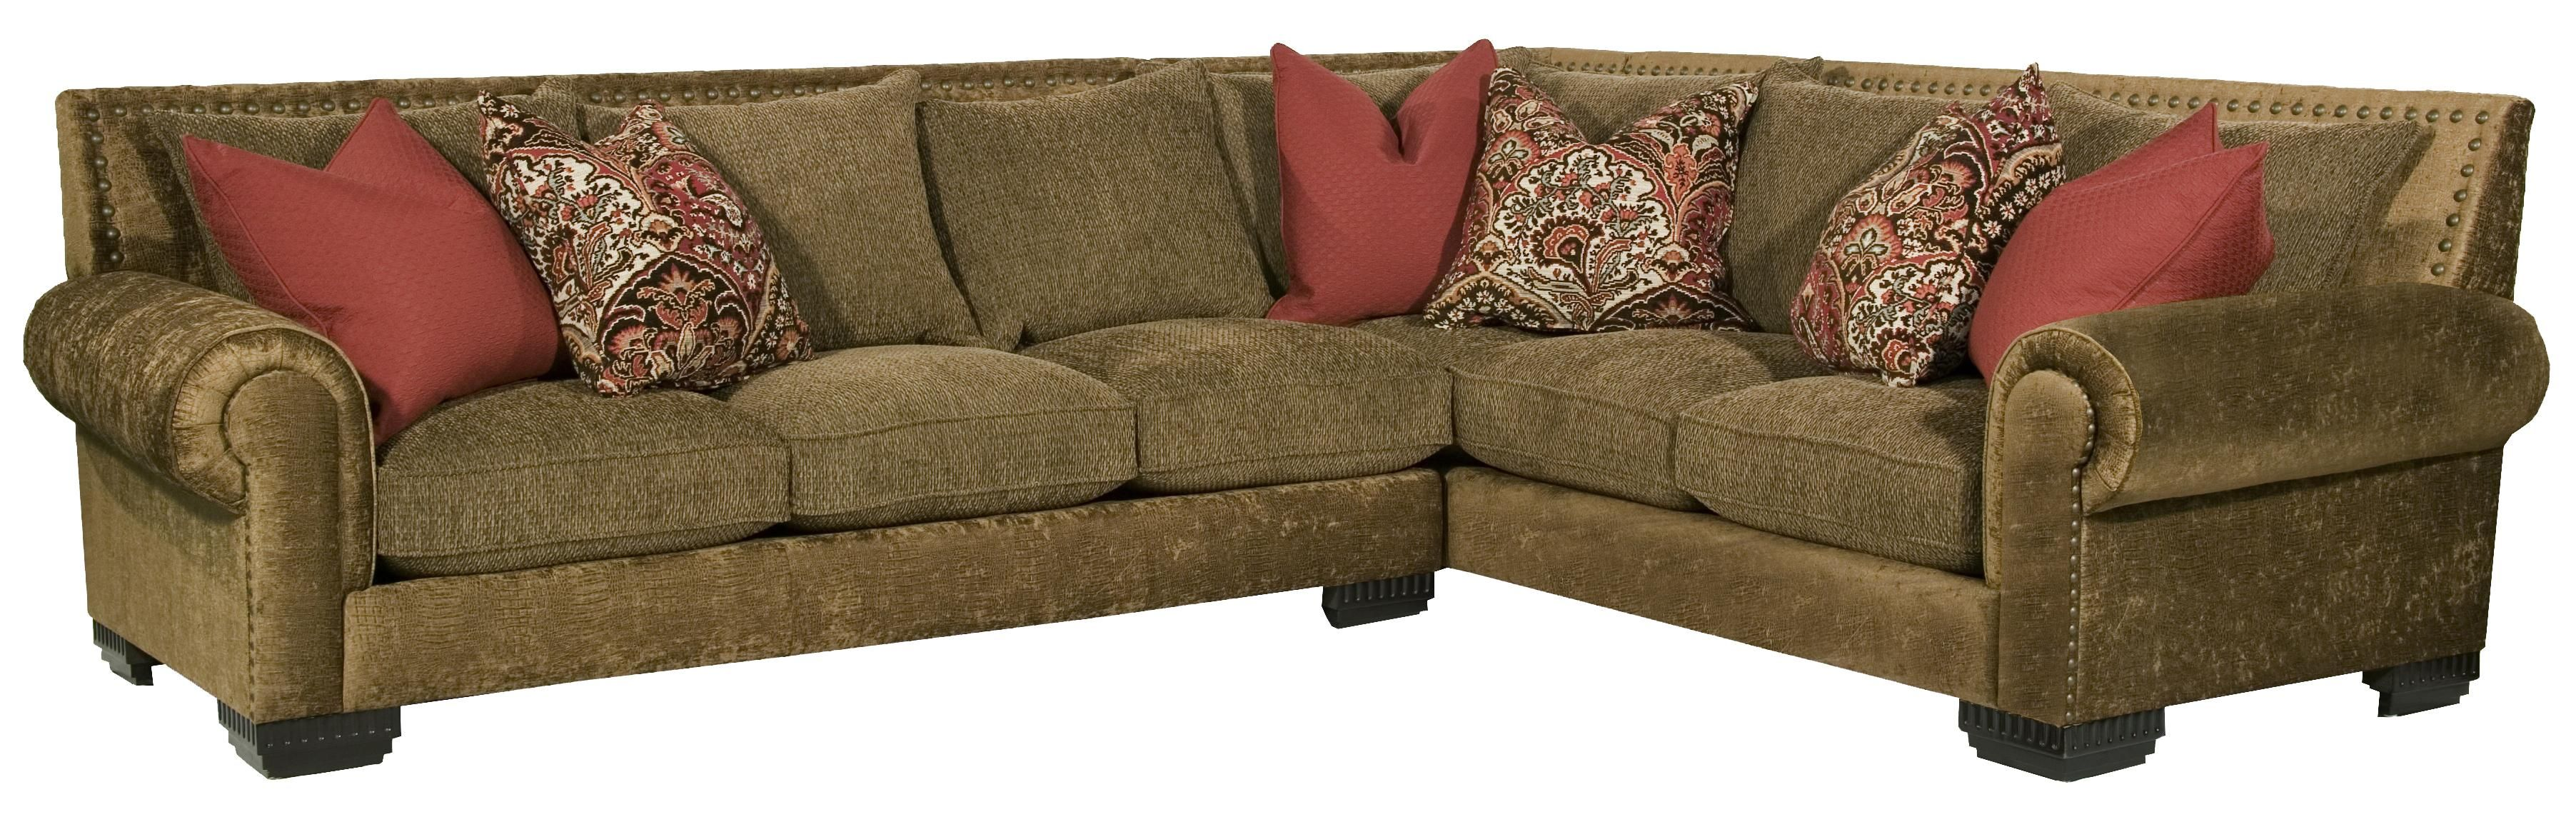 Jackson II Traditional Styled Sectional Sofa by Robert Michael